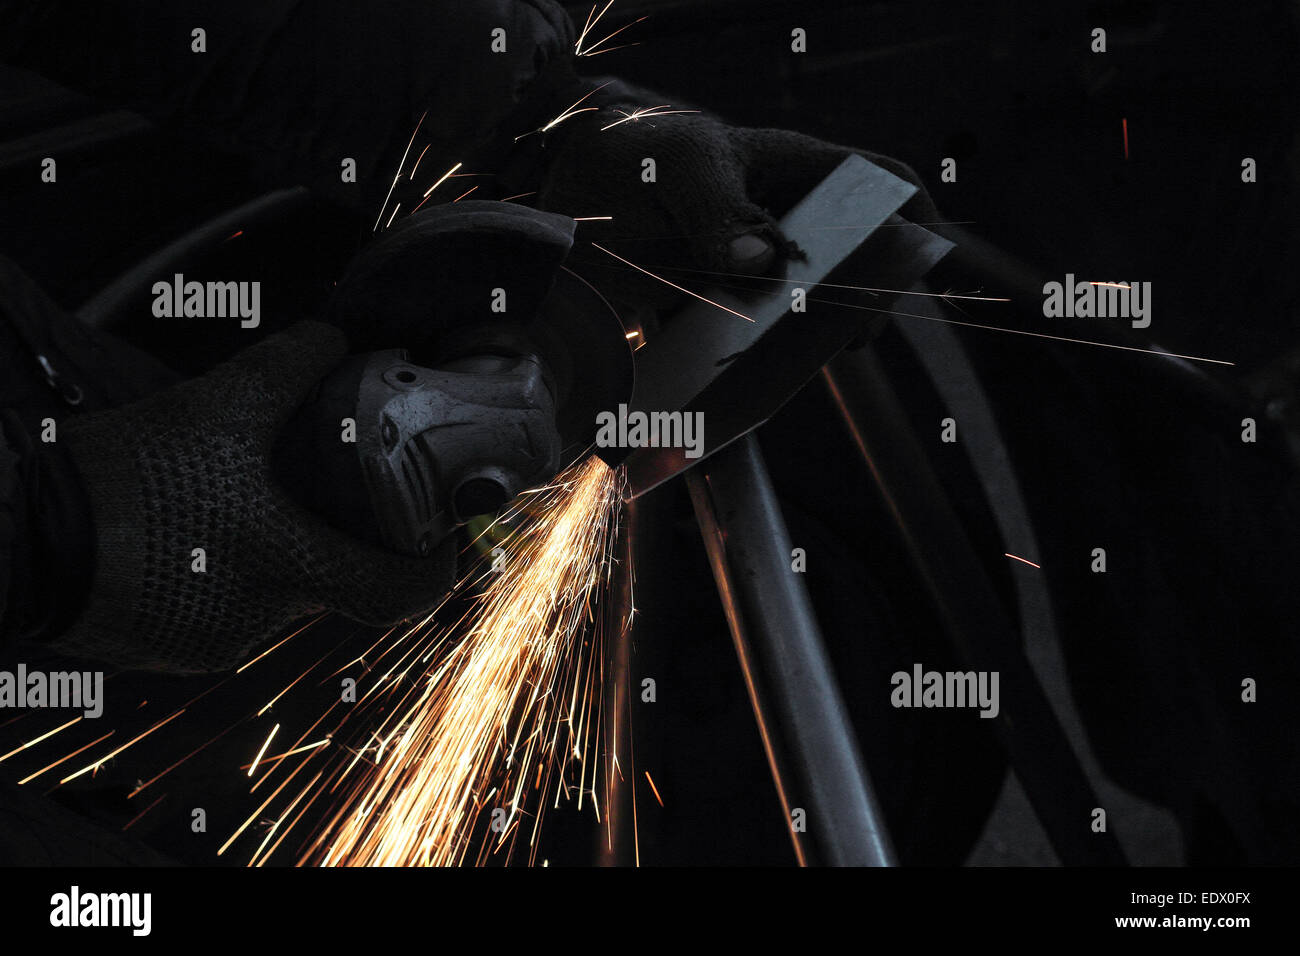 Sparks from the angle drive grinder against a dark background. - Stock Image